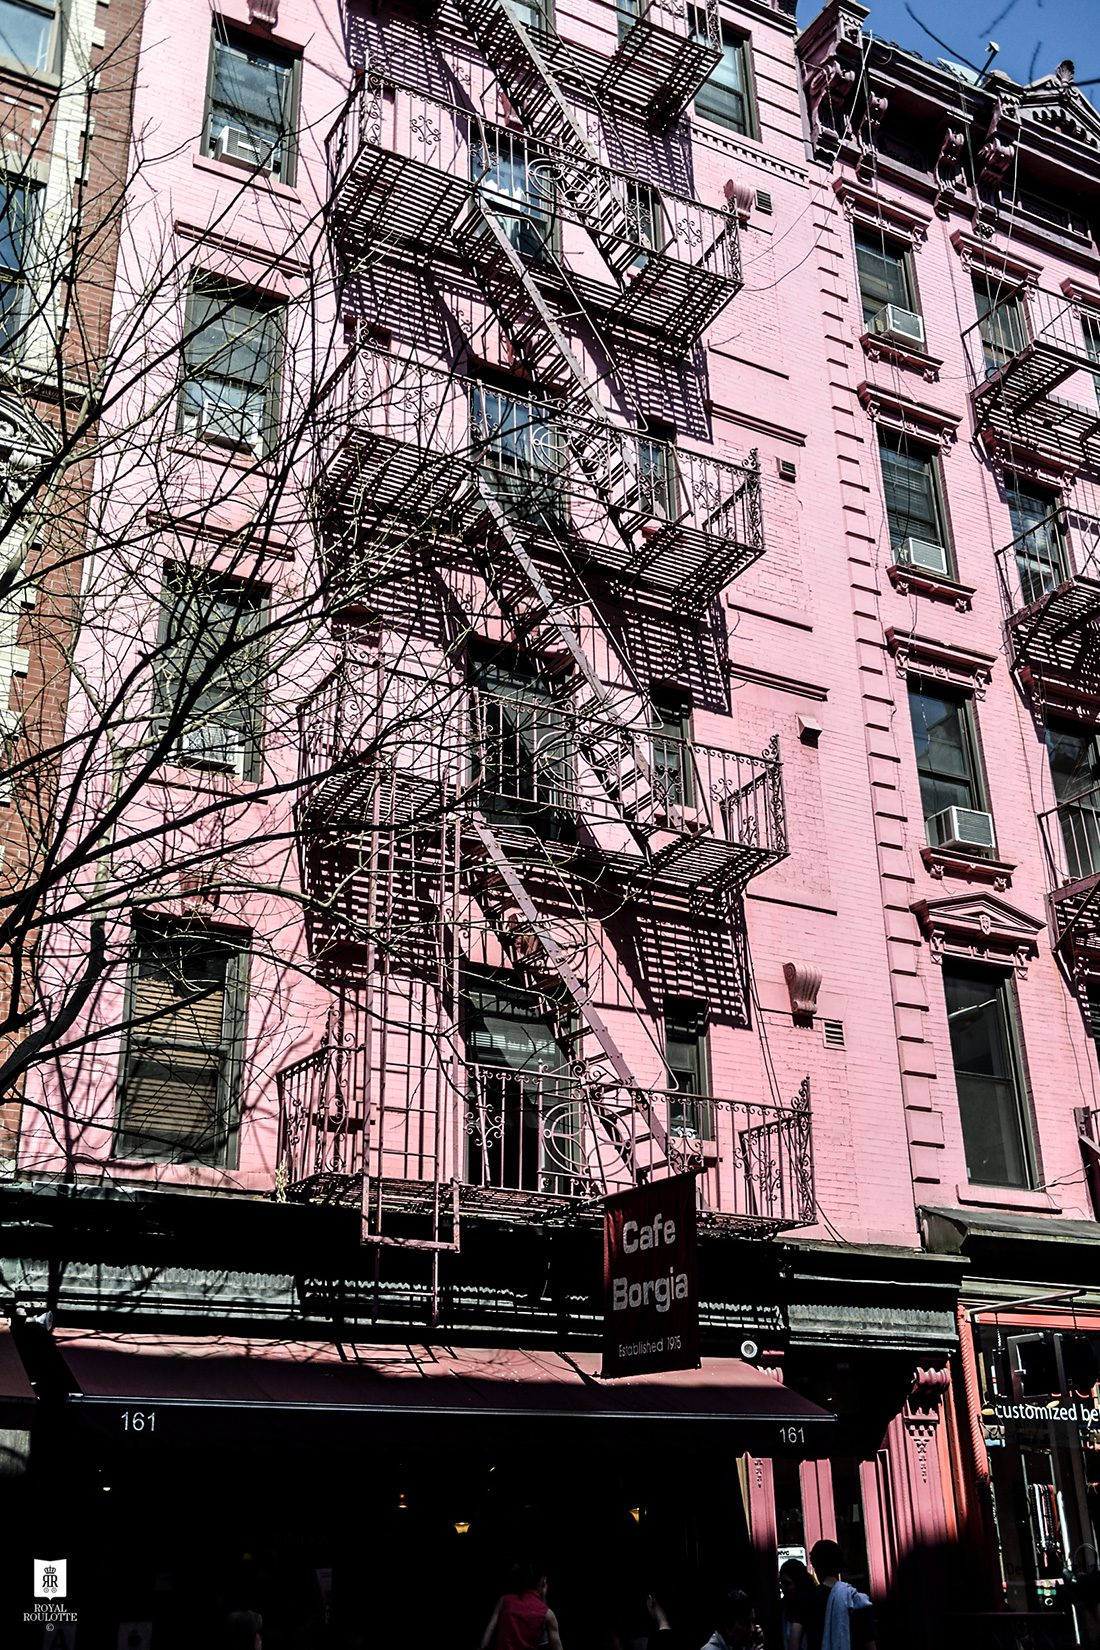 ROYAL_ROULOTTE_NYC_NEW_YORK_2019_05